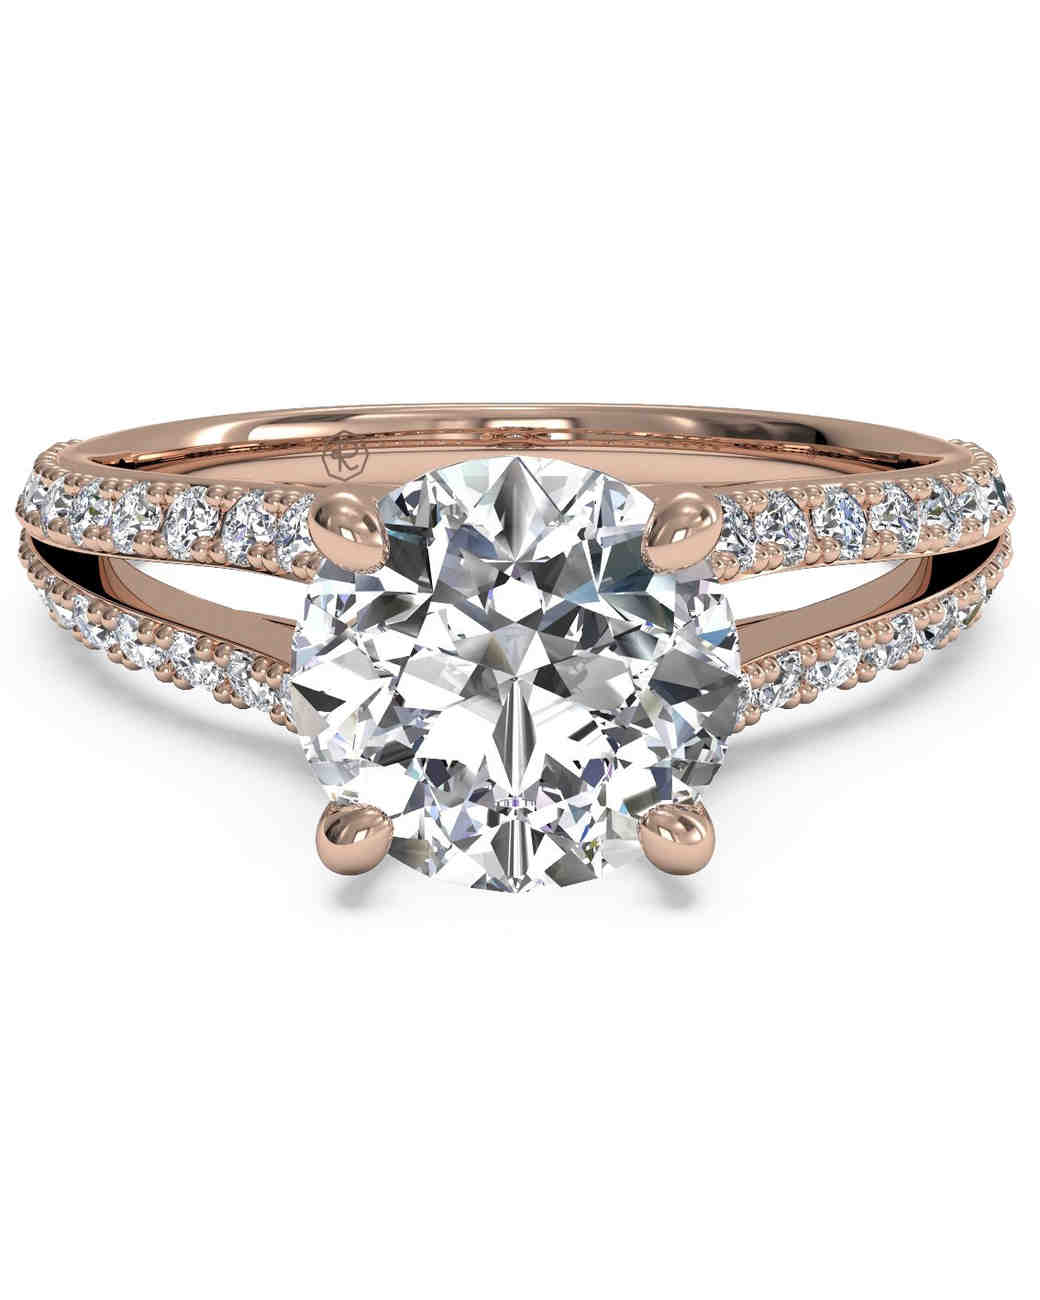 a our stone french radiant with looks engagement this any center rings and great shape is princess cut halo shown round style pin